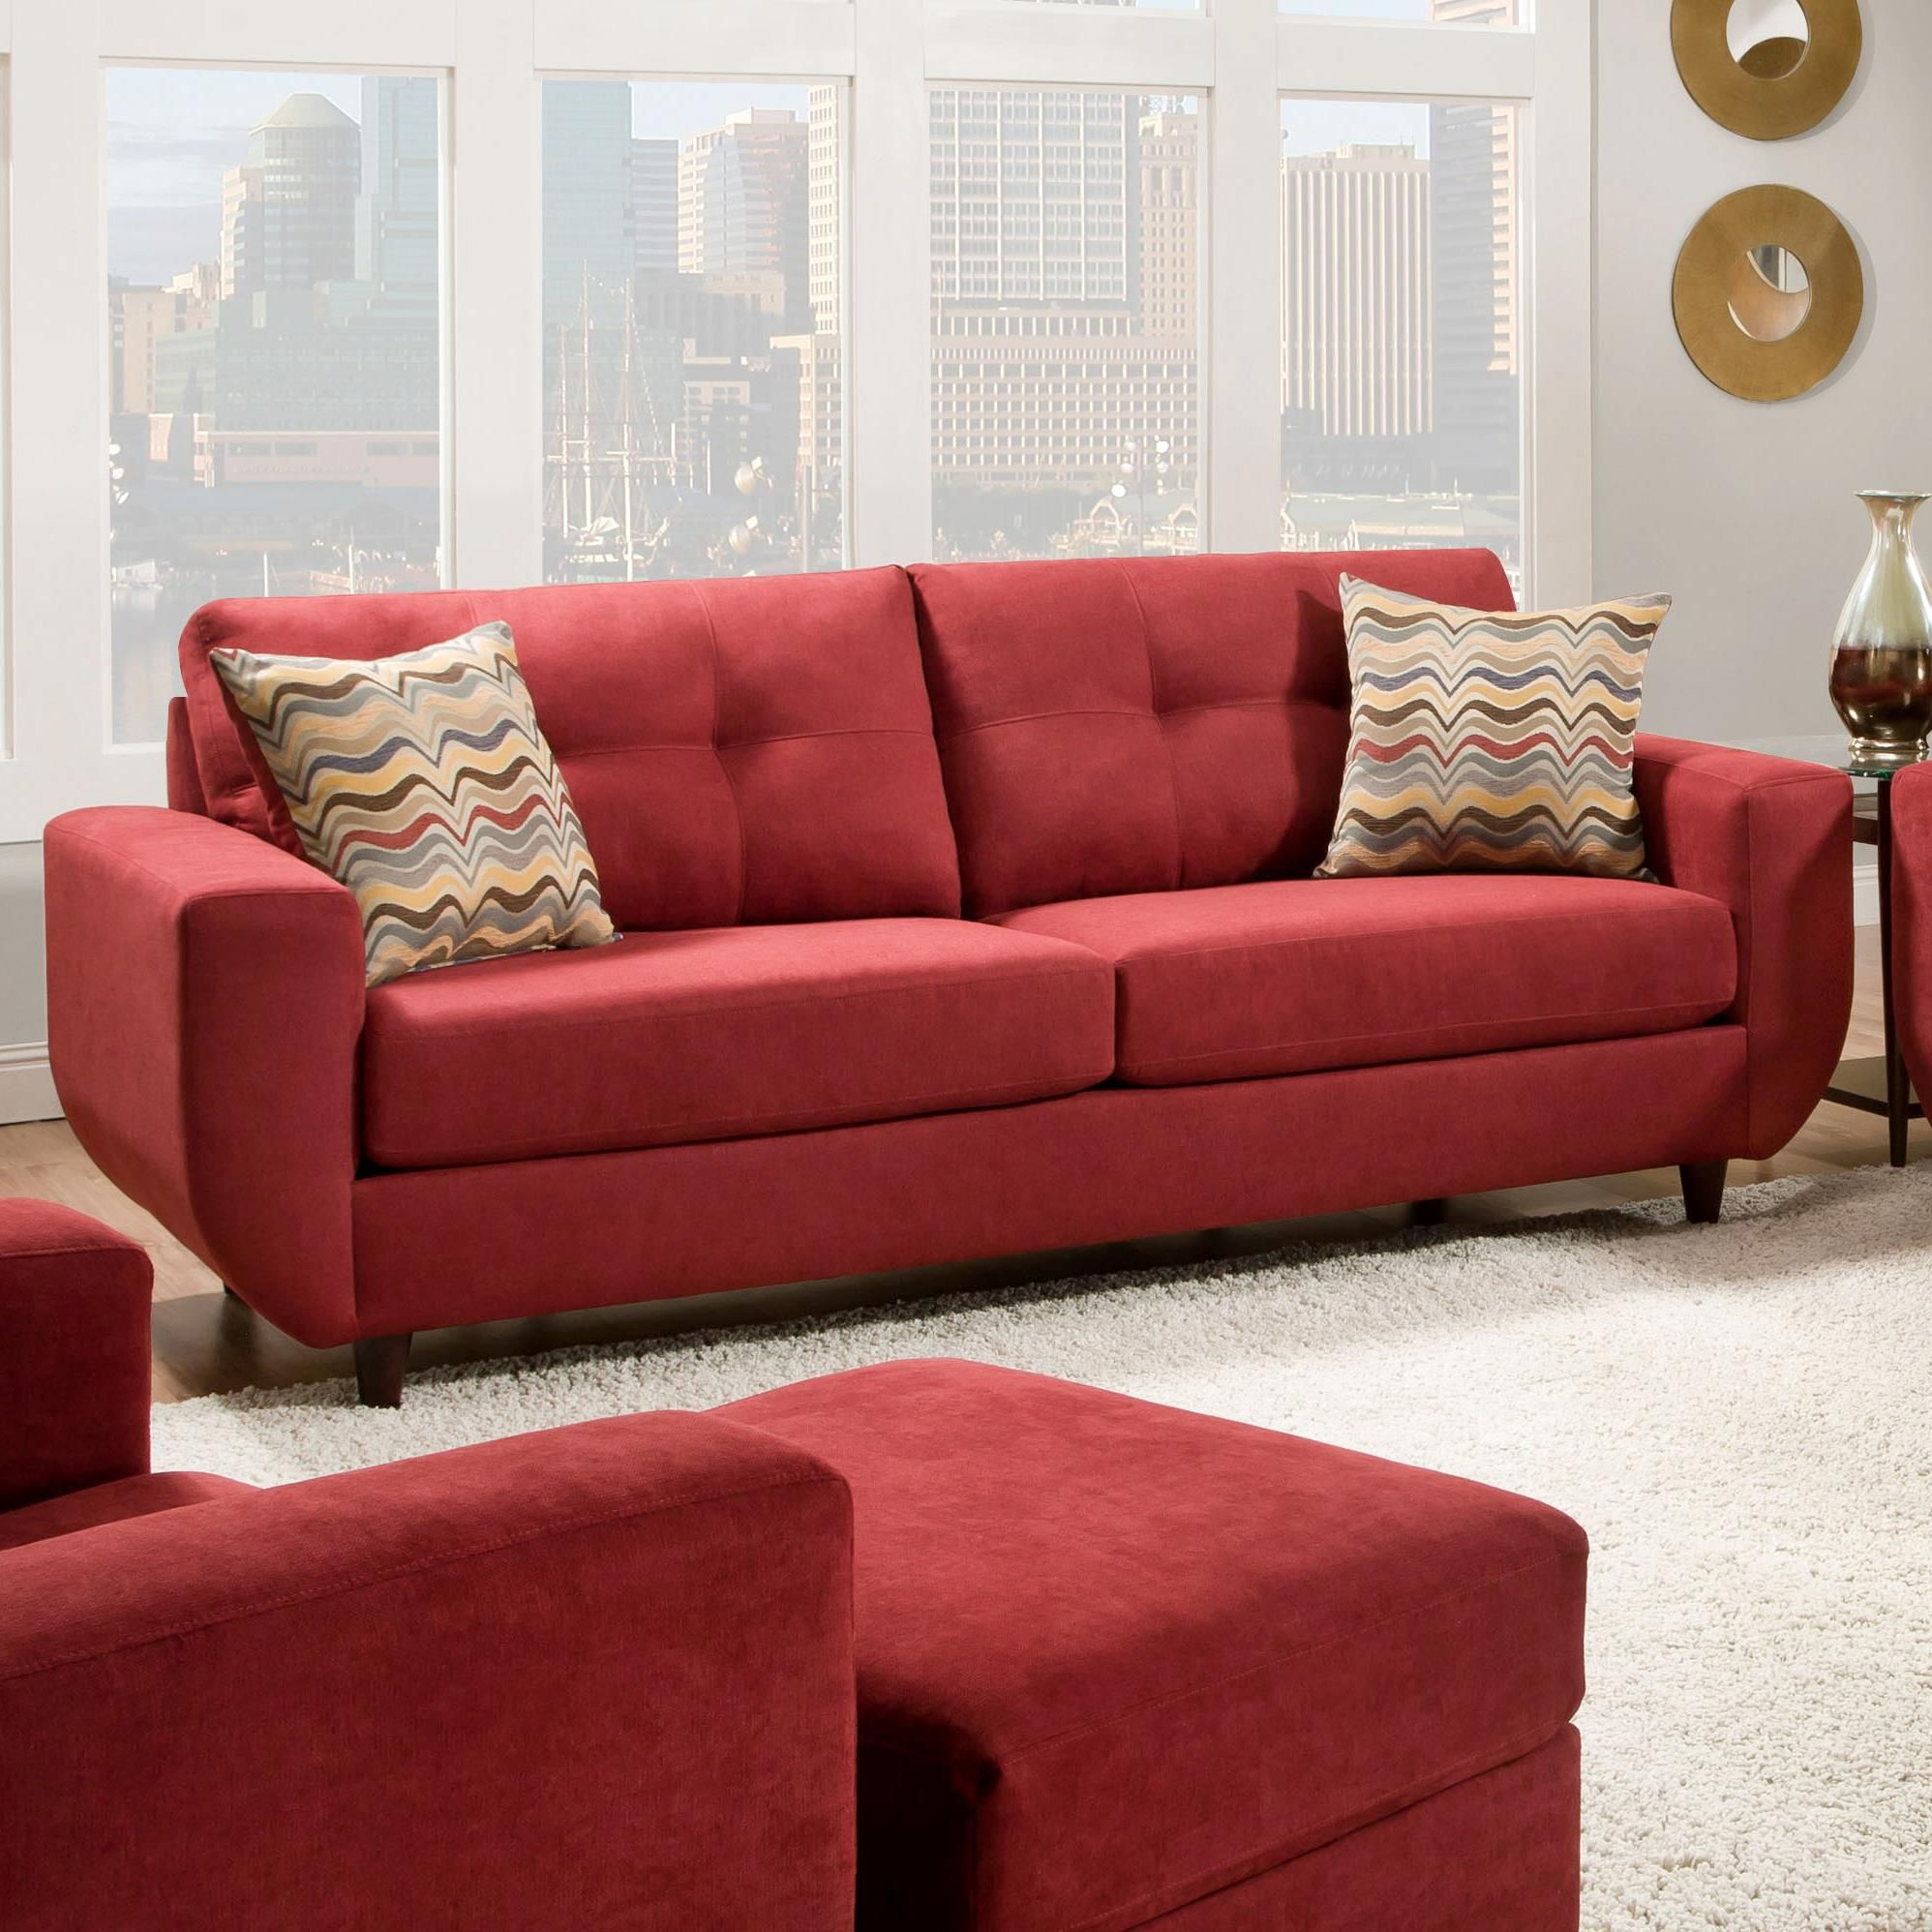 sacramento day low furniture every stores prices cp in